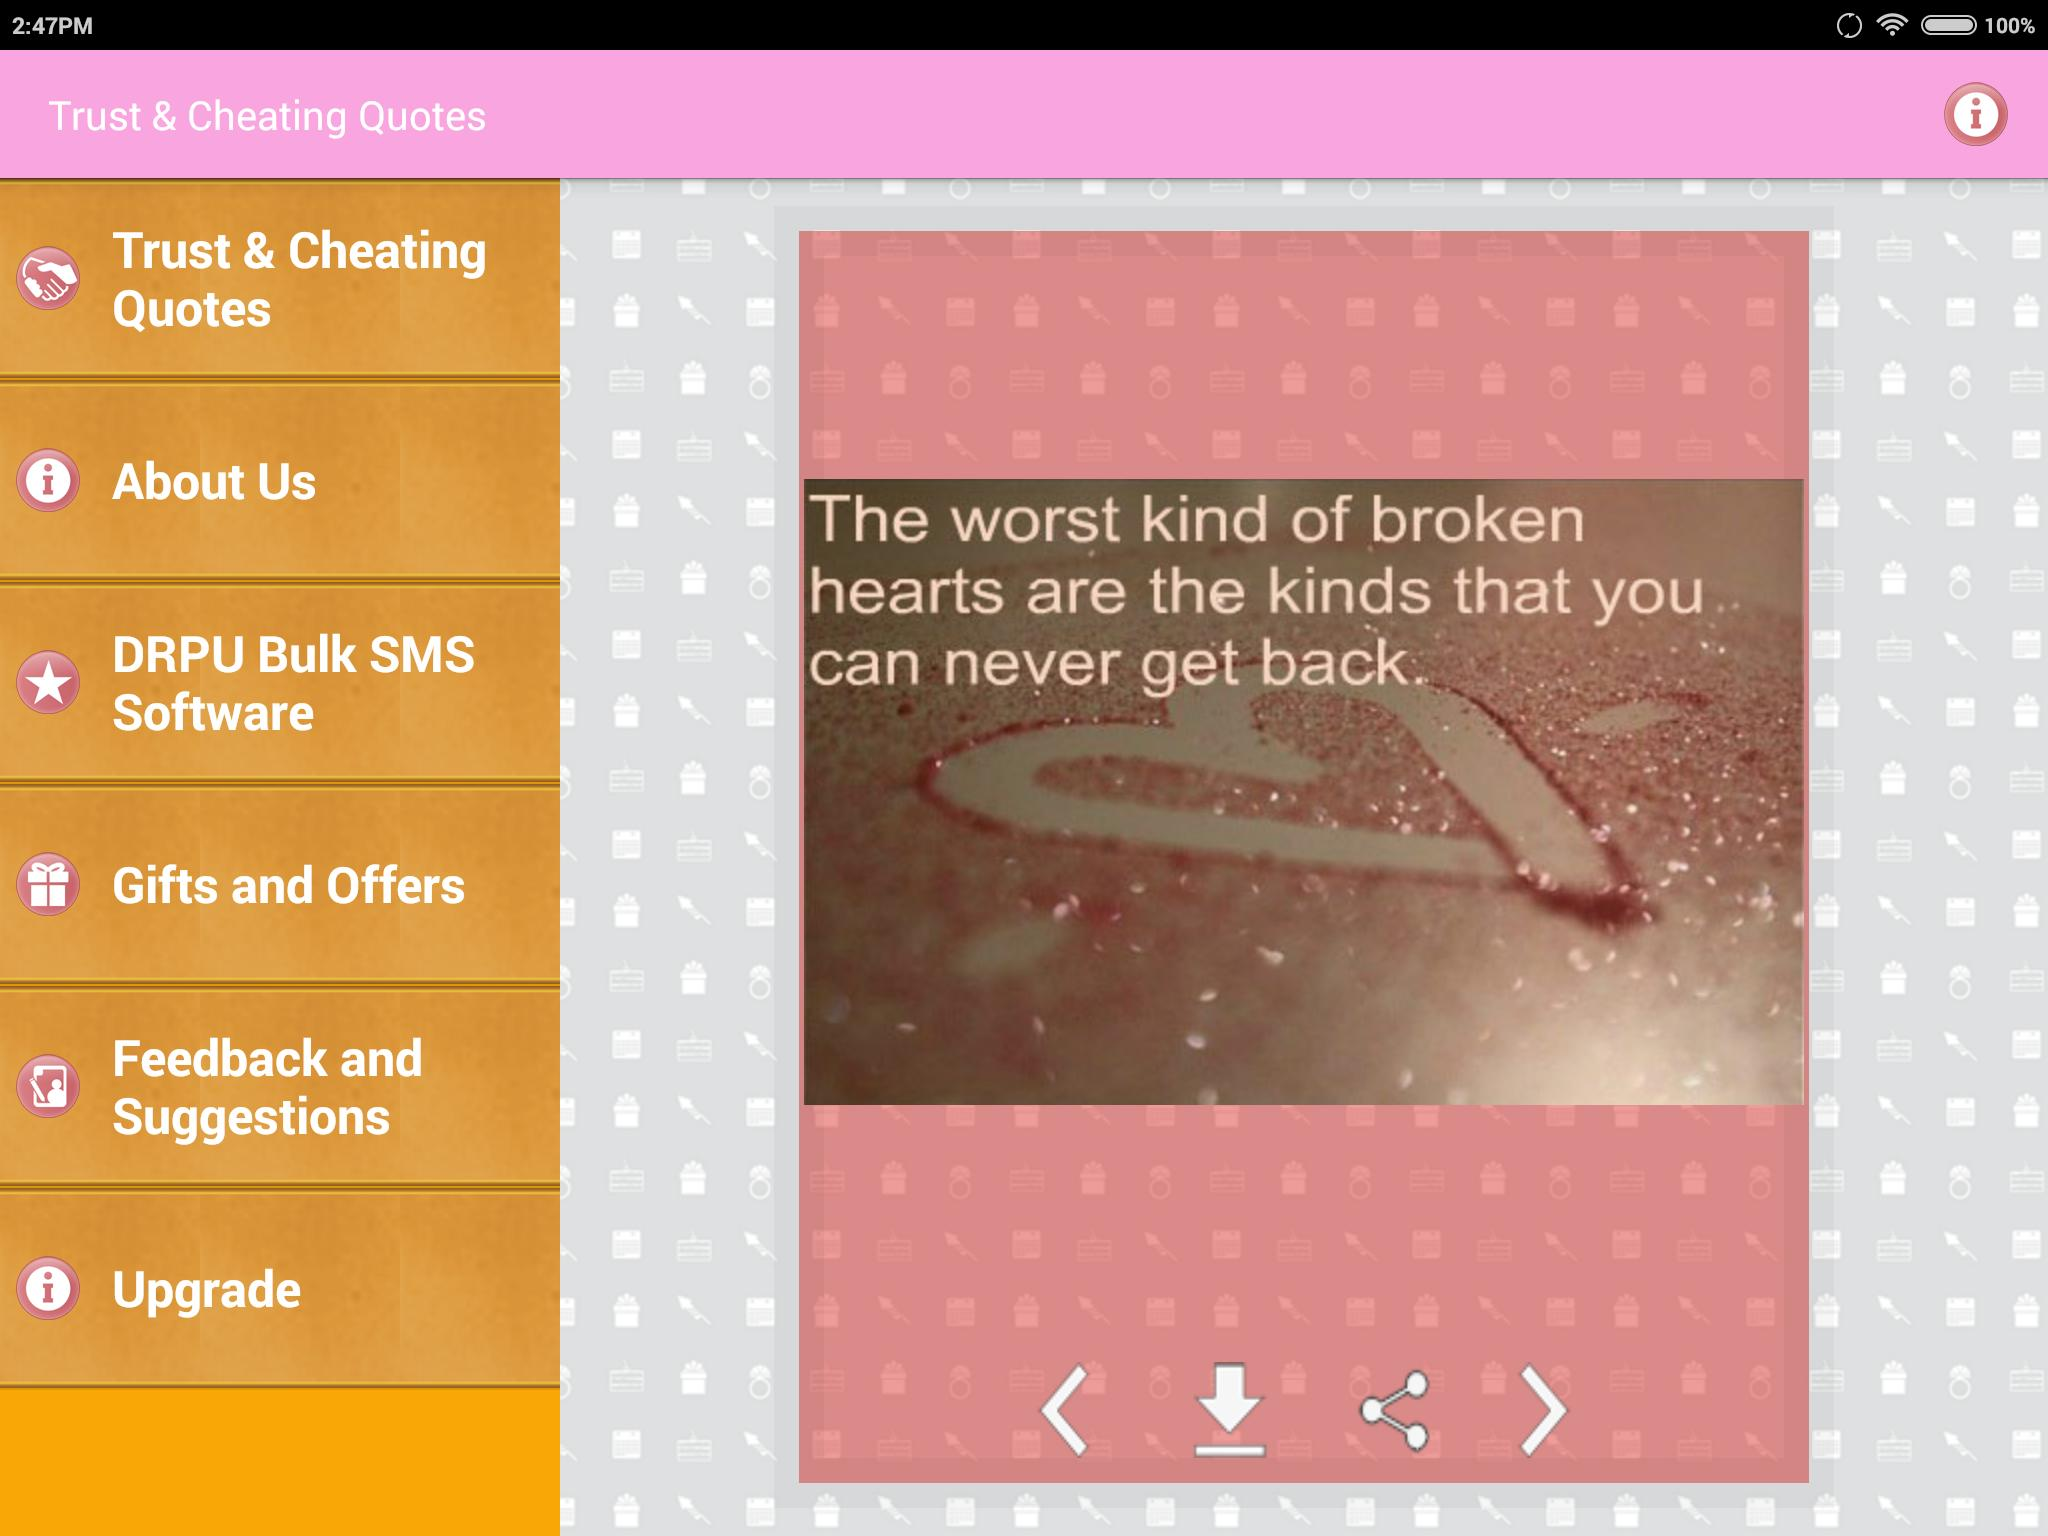 Trust & Cheating Quotes for Android - APK Download